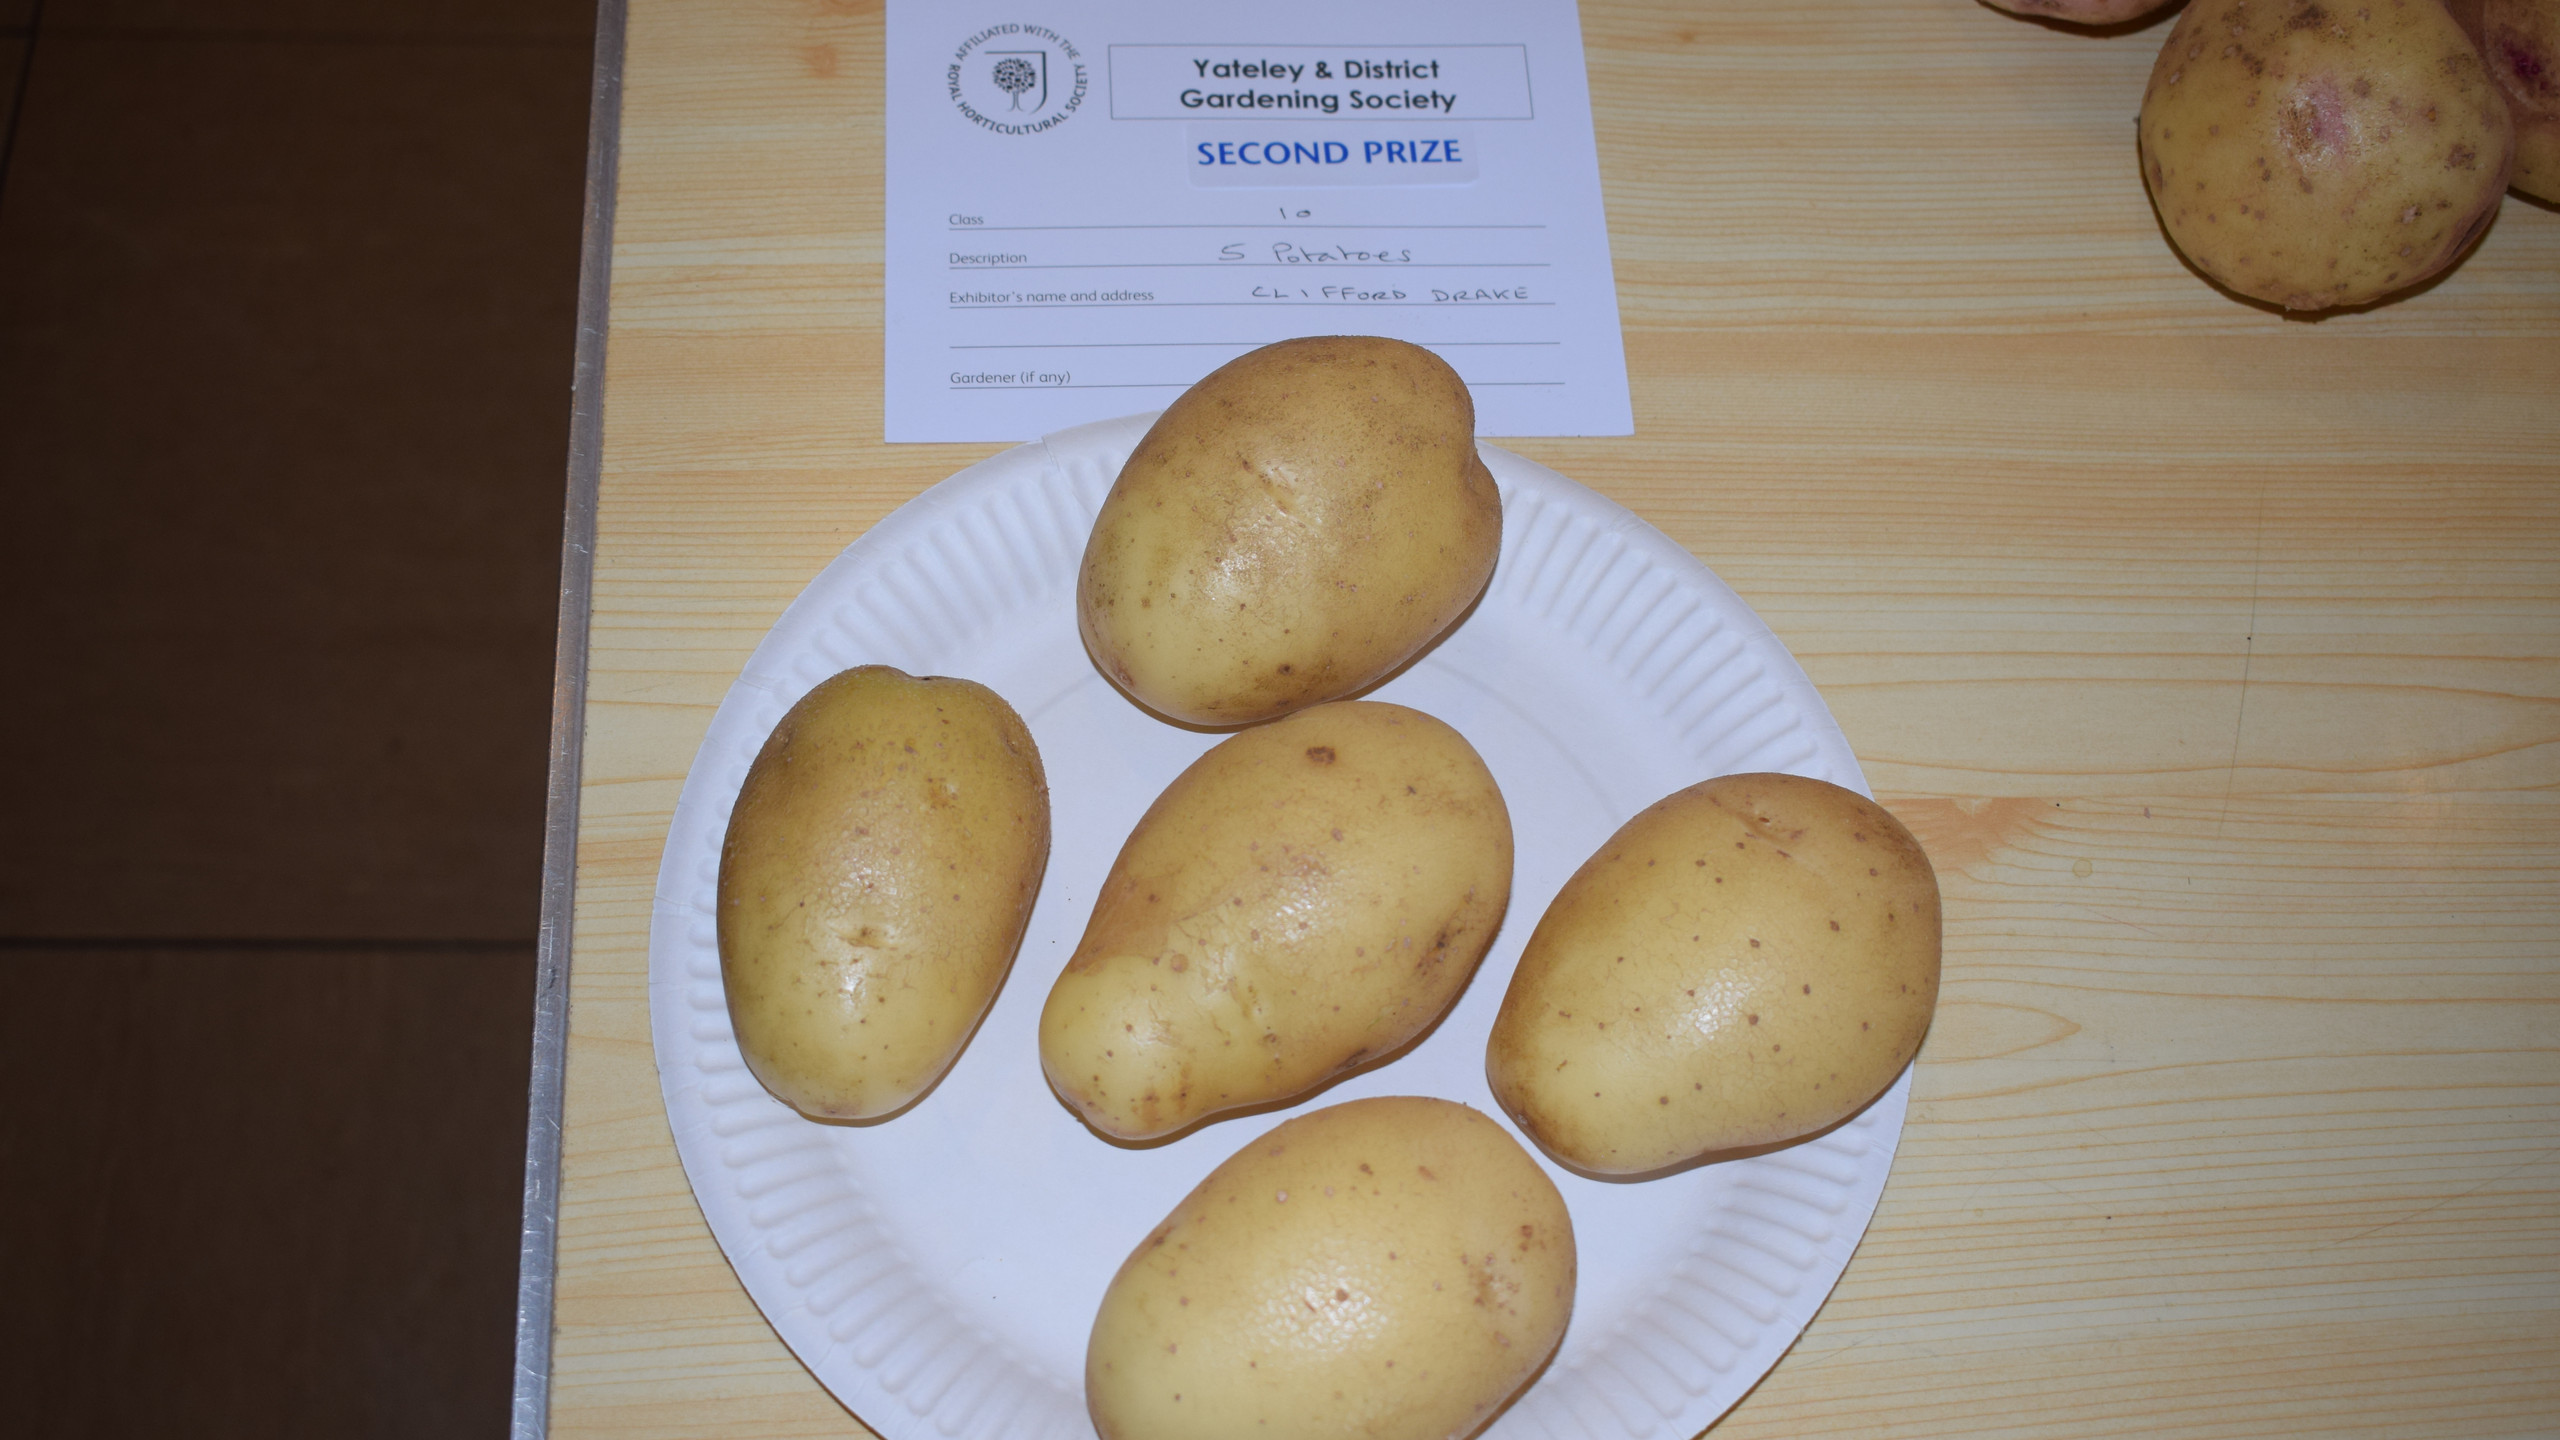 2nd prize for 5 potatoes